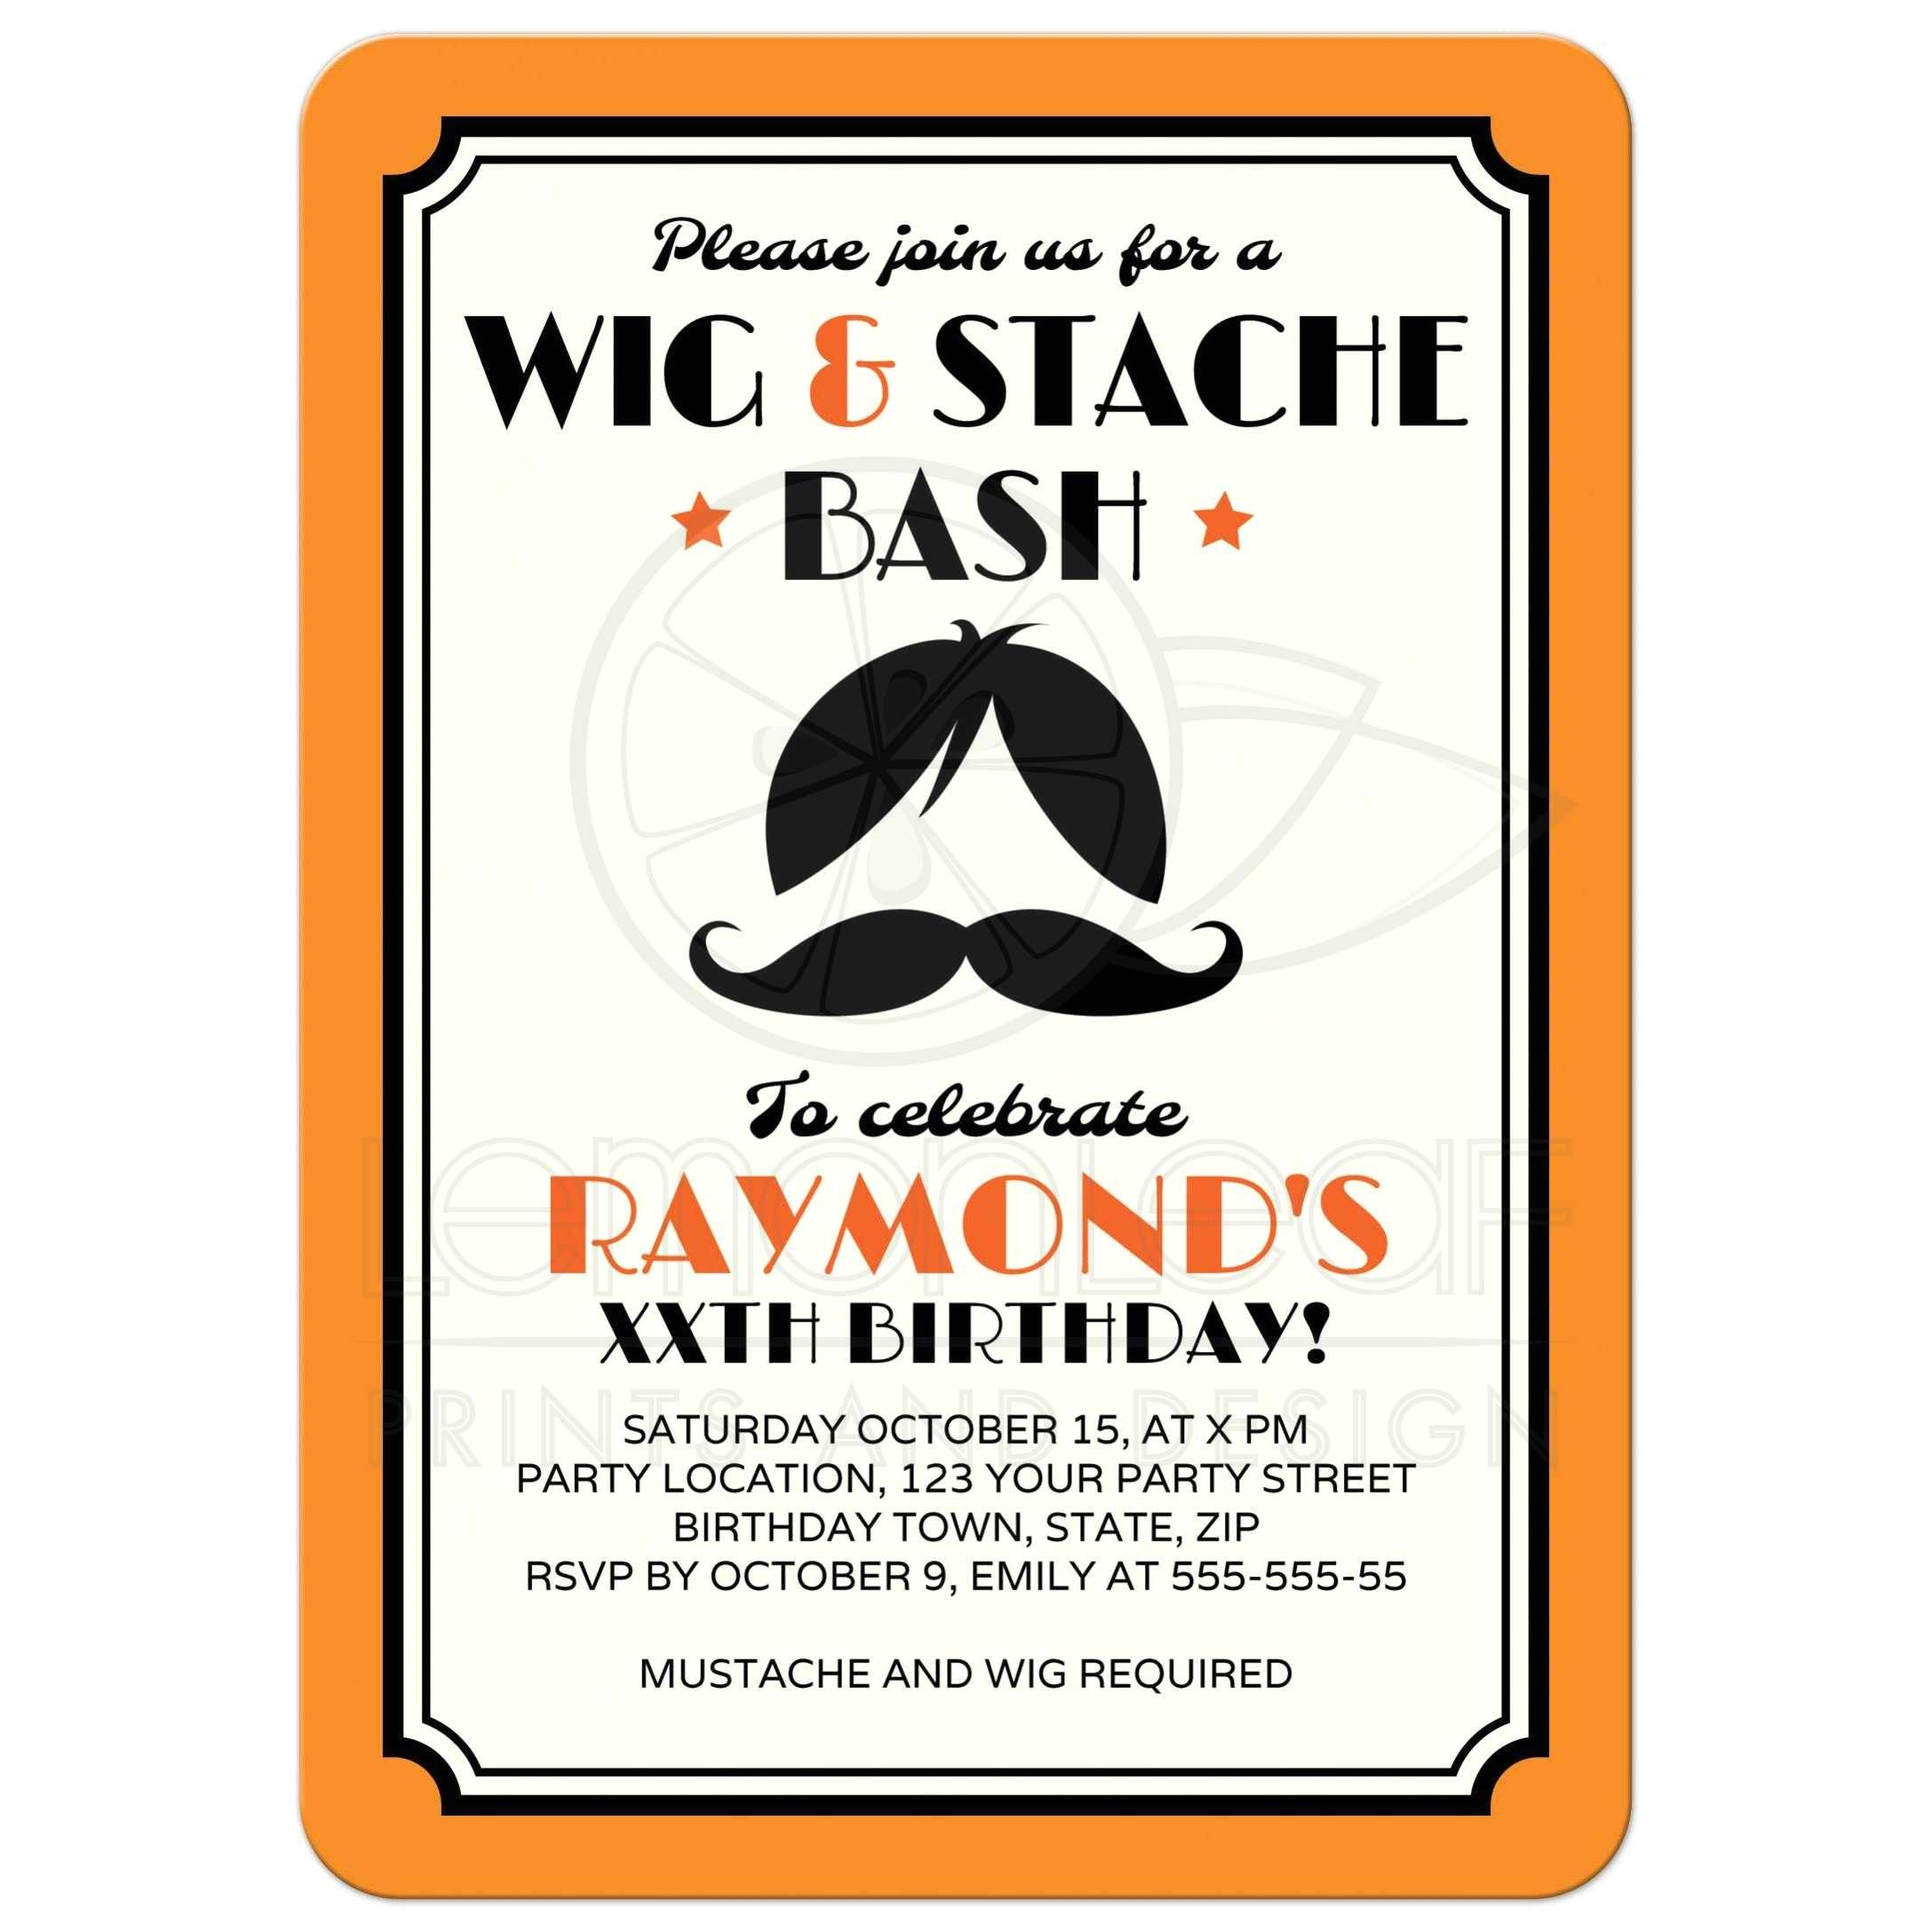 retro wig and mustache bash birthday party invitation orange black